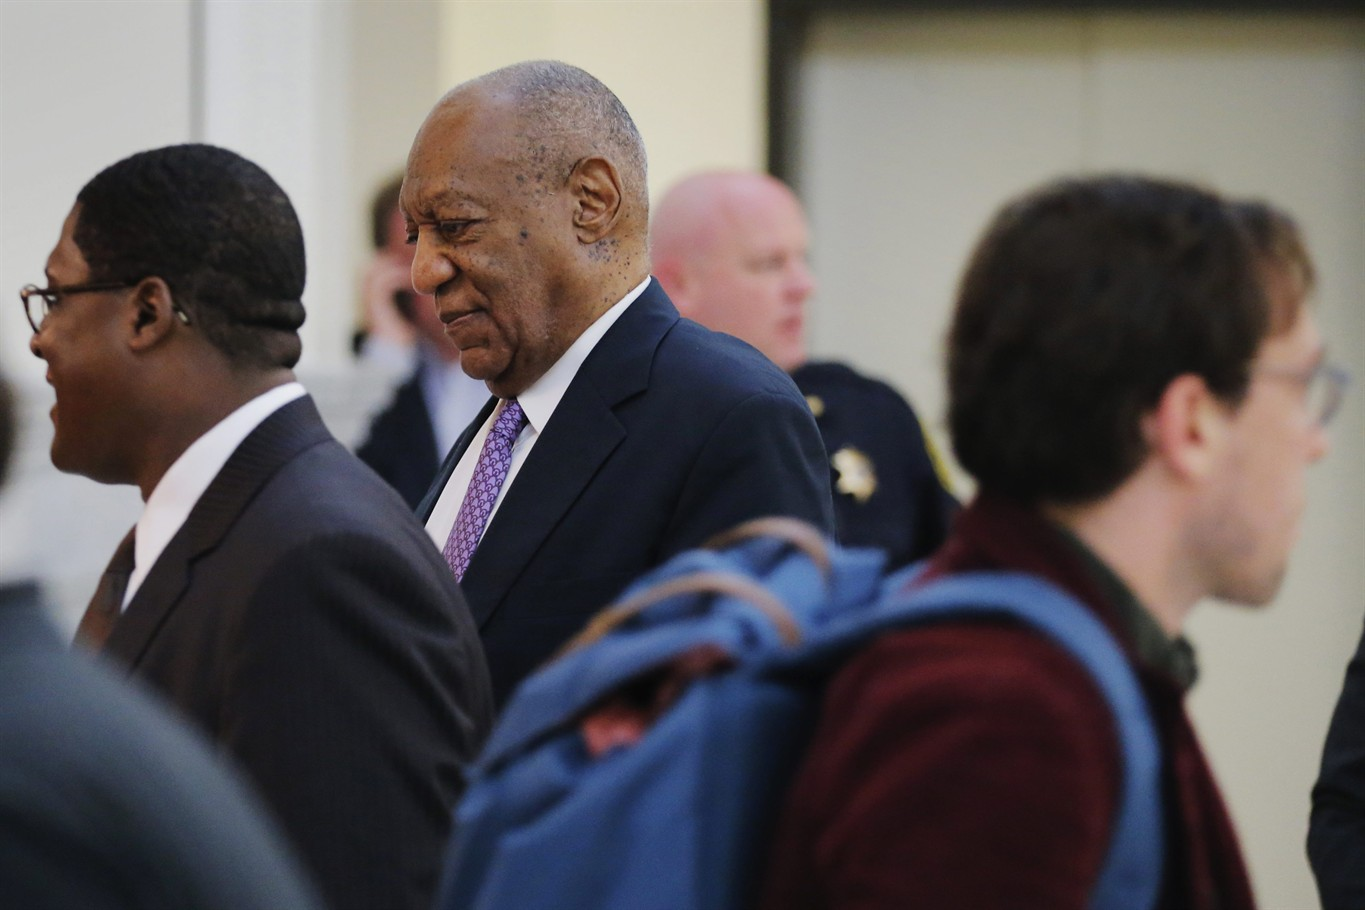 Cosby told mother of his 'victim' he was sorry